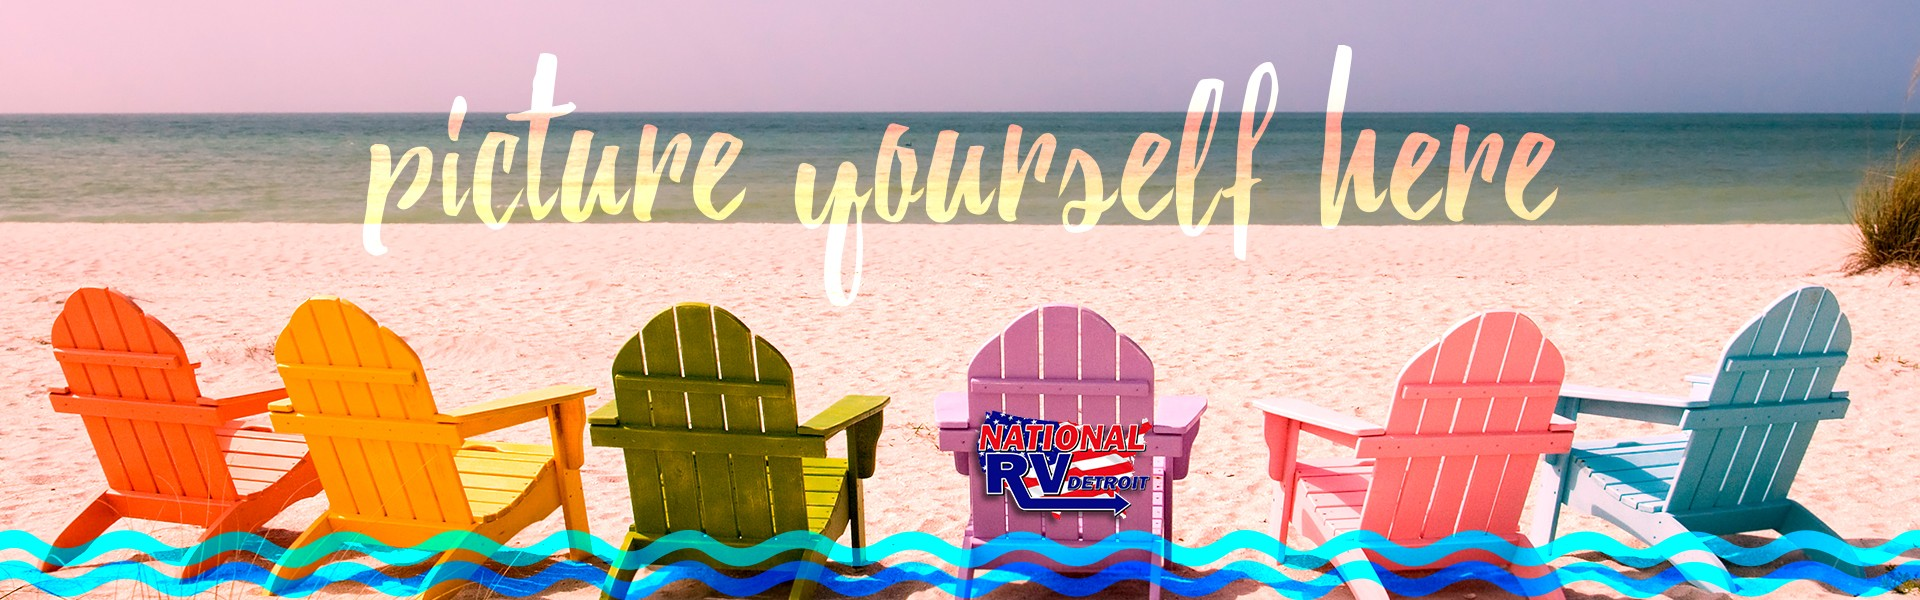 picture yourself here - colorful beach chairs lining oceanfront